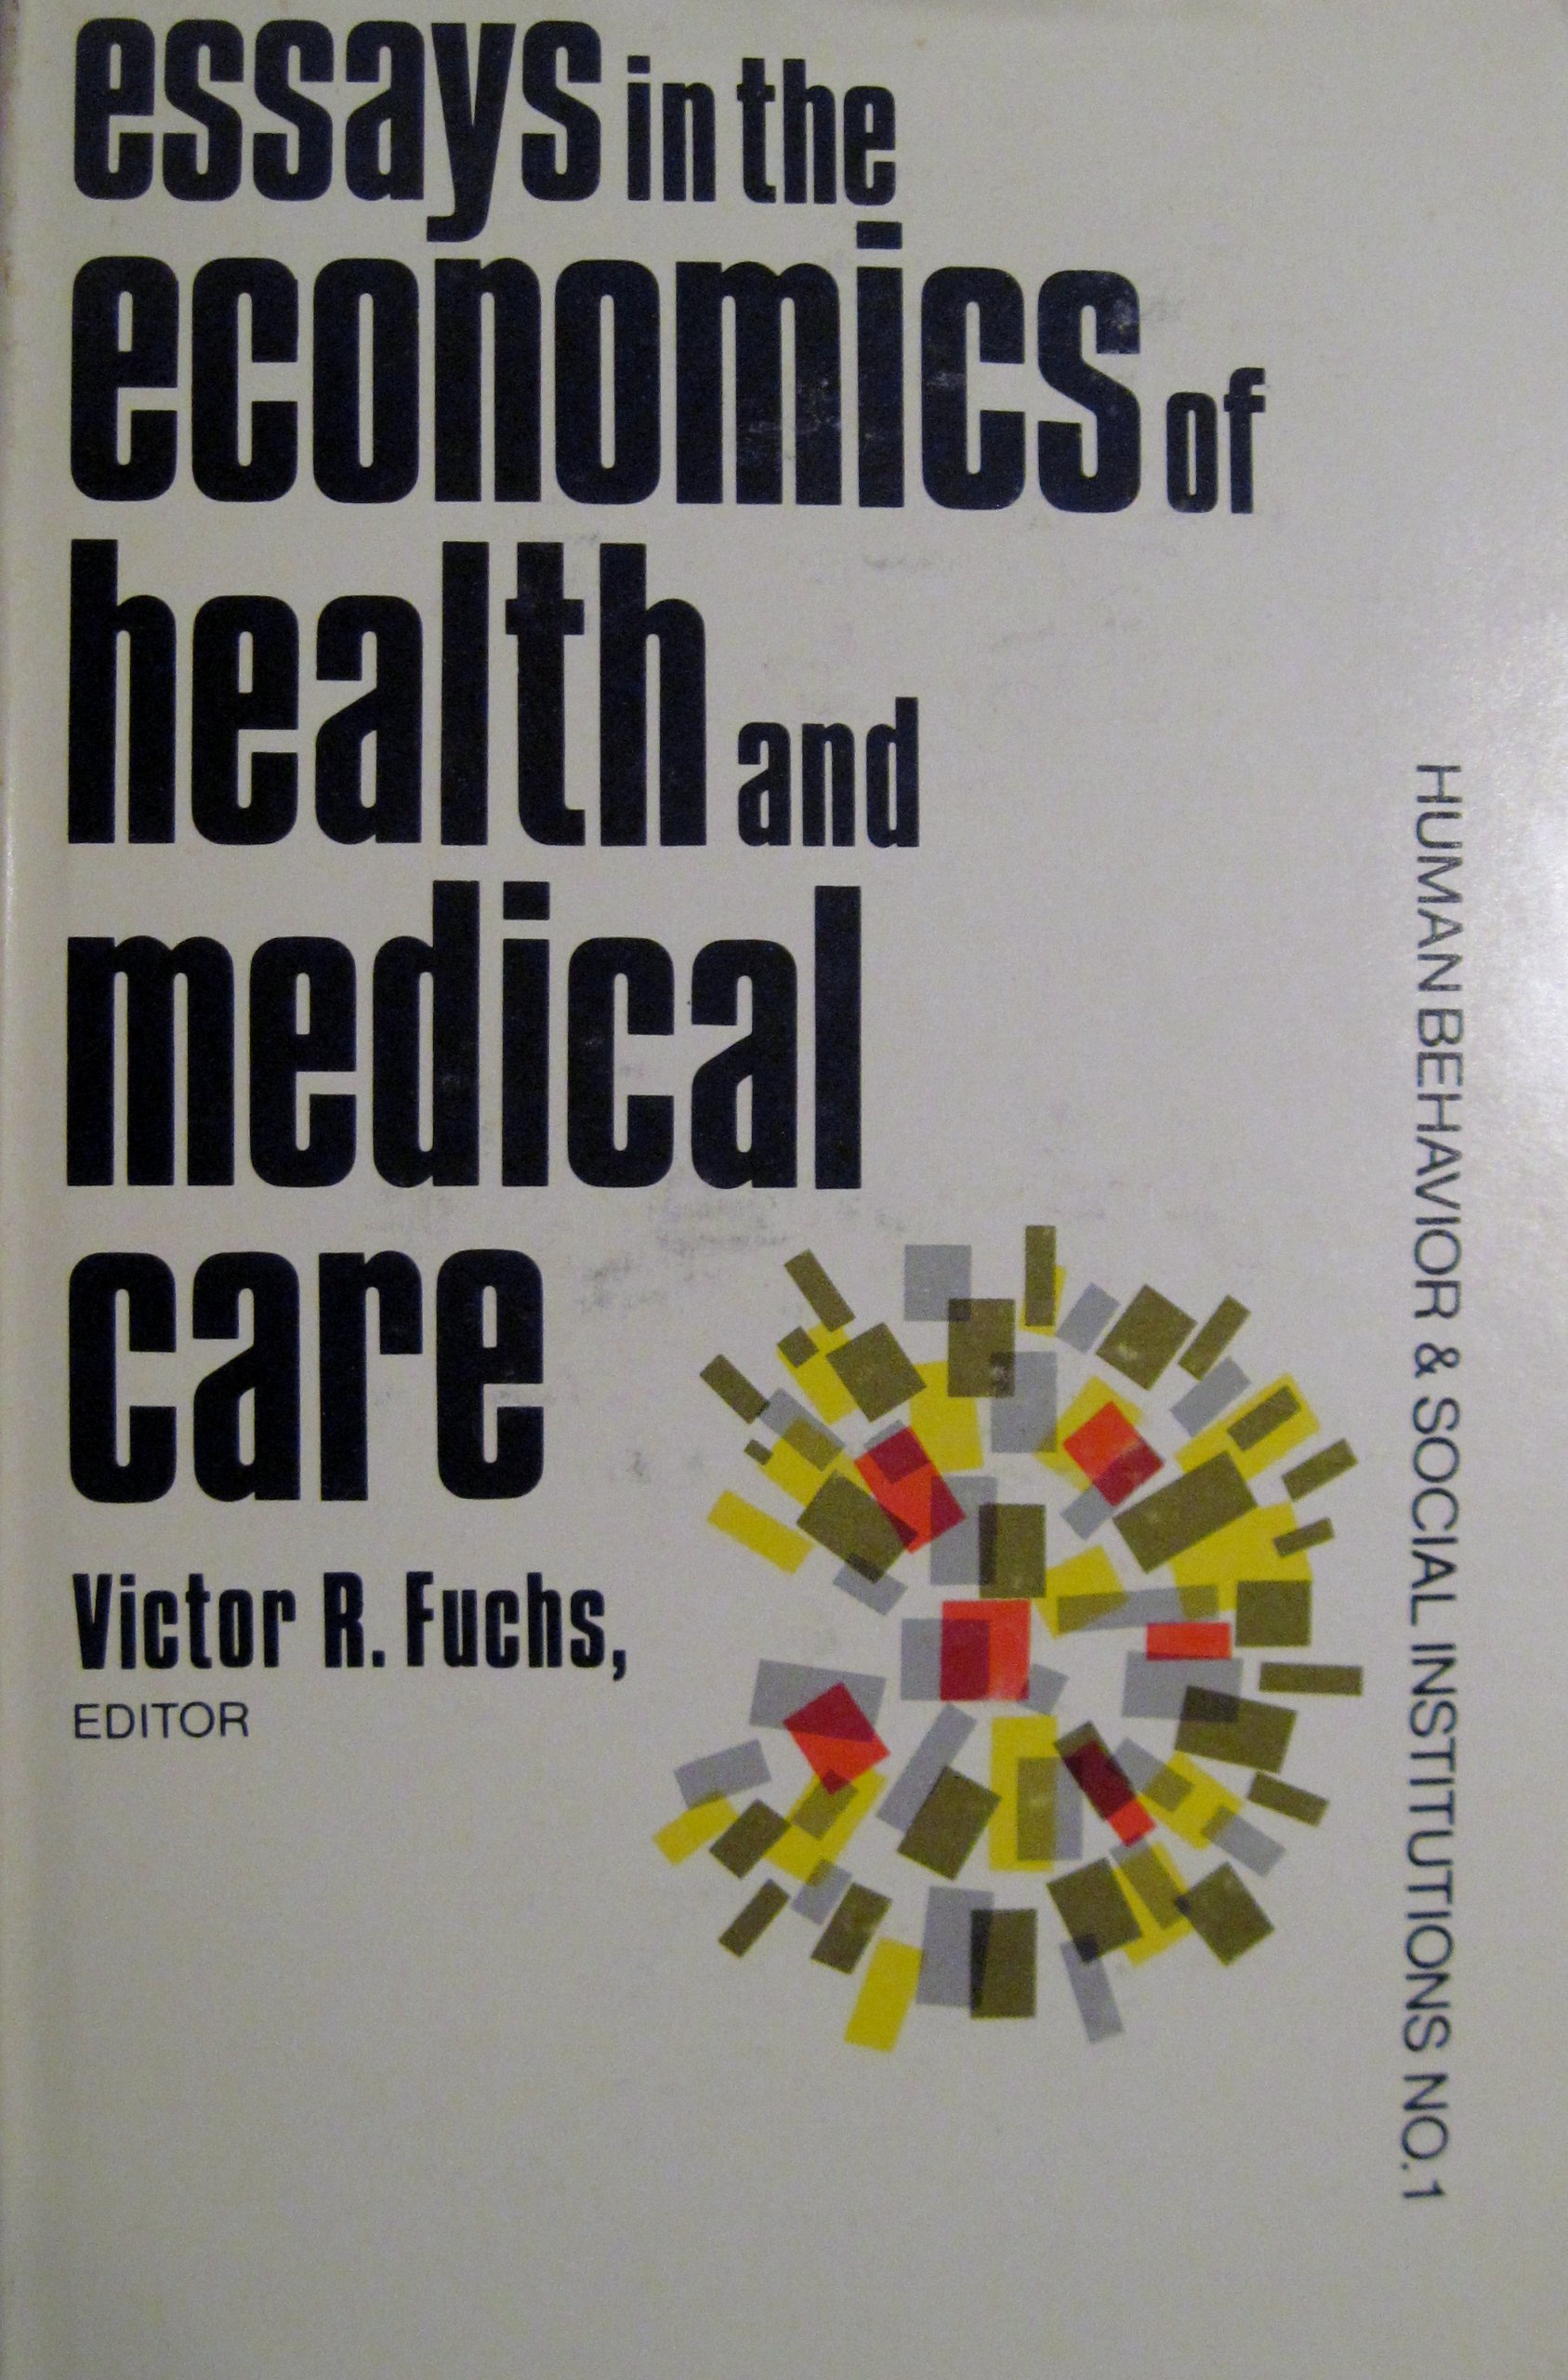 essays in the economics of health and medical care human behavior  essays in the economics of health and medical care human behavior and  social institutions hardcover